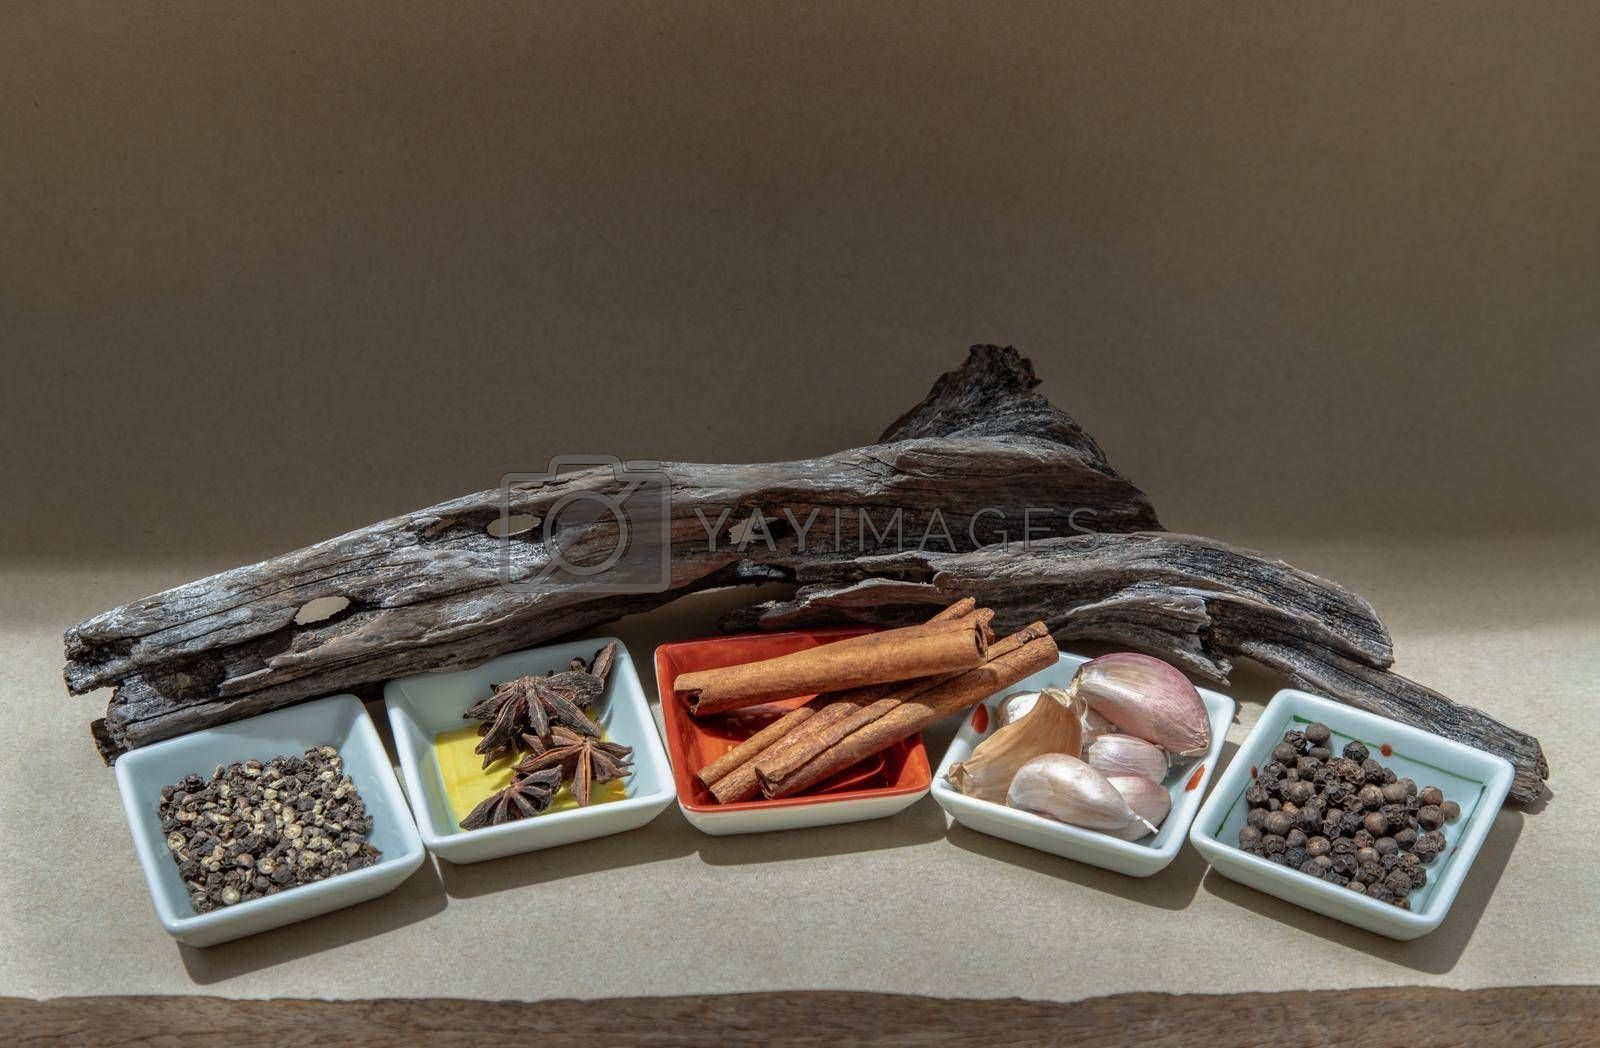 Spices and herbs seasoning containing cinnamon, star anise, garlic and black pepper in ceramics bowls on brown background. Organic herbal and healthy concept. Selective focus.